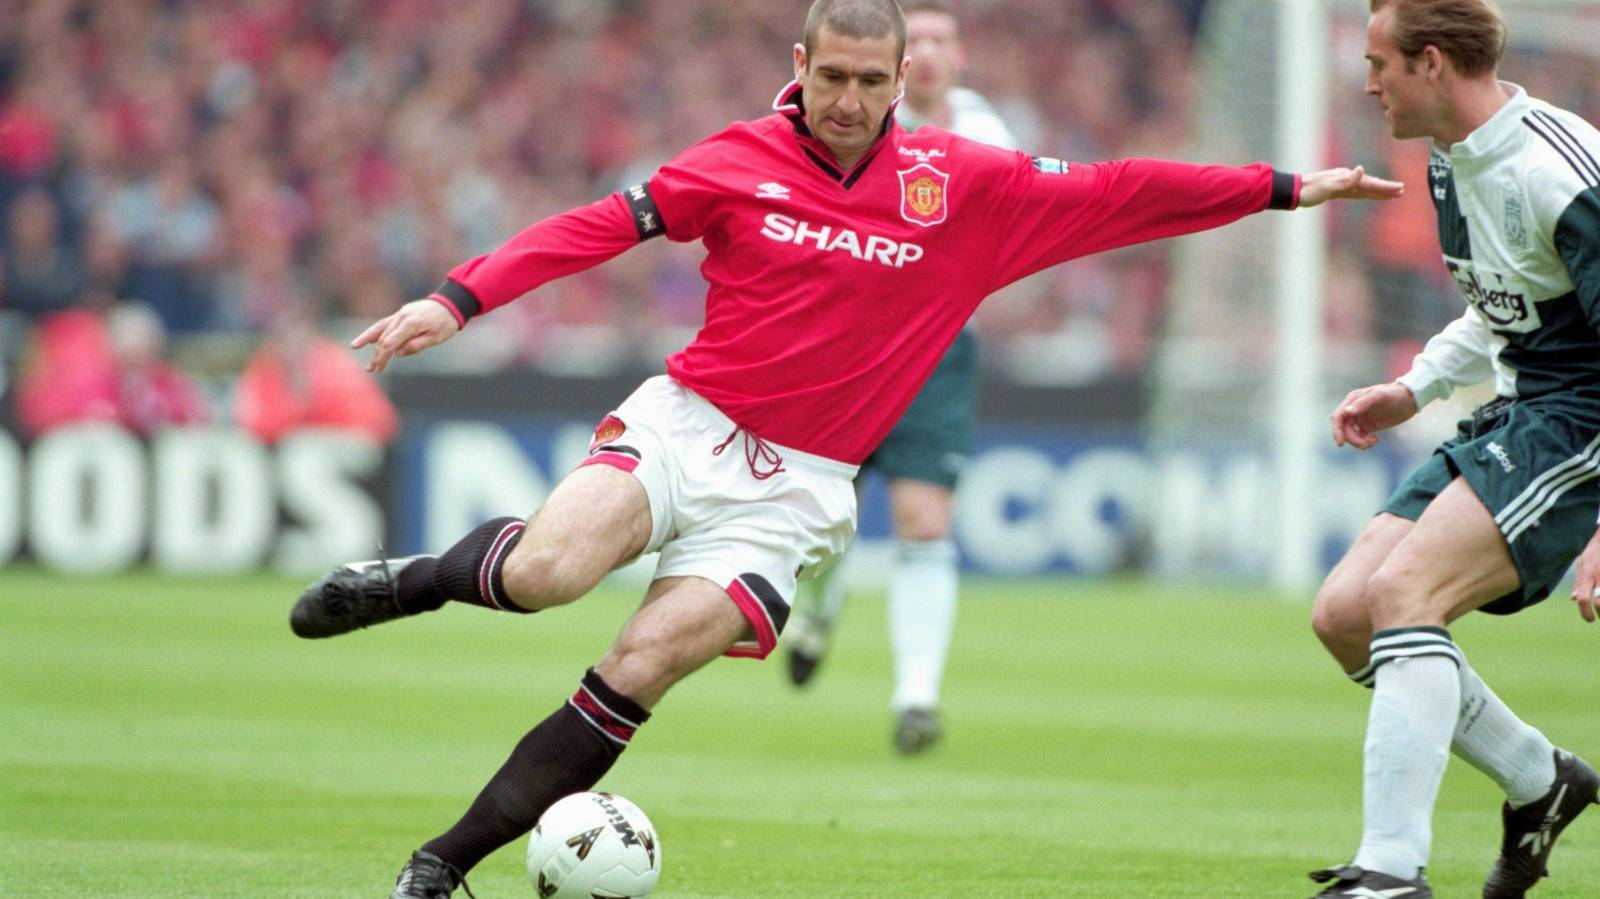 Host Cantona steals the show in entertaining Manchester United doco